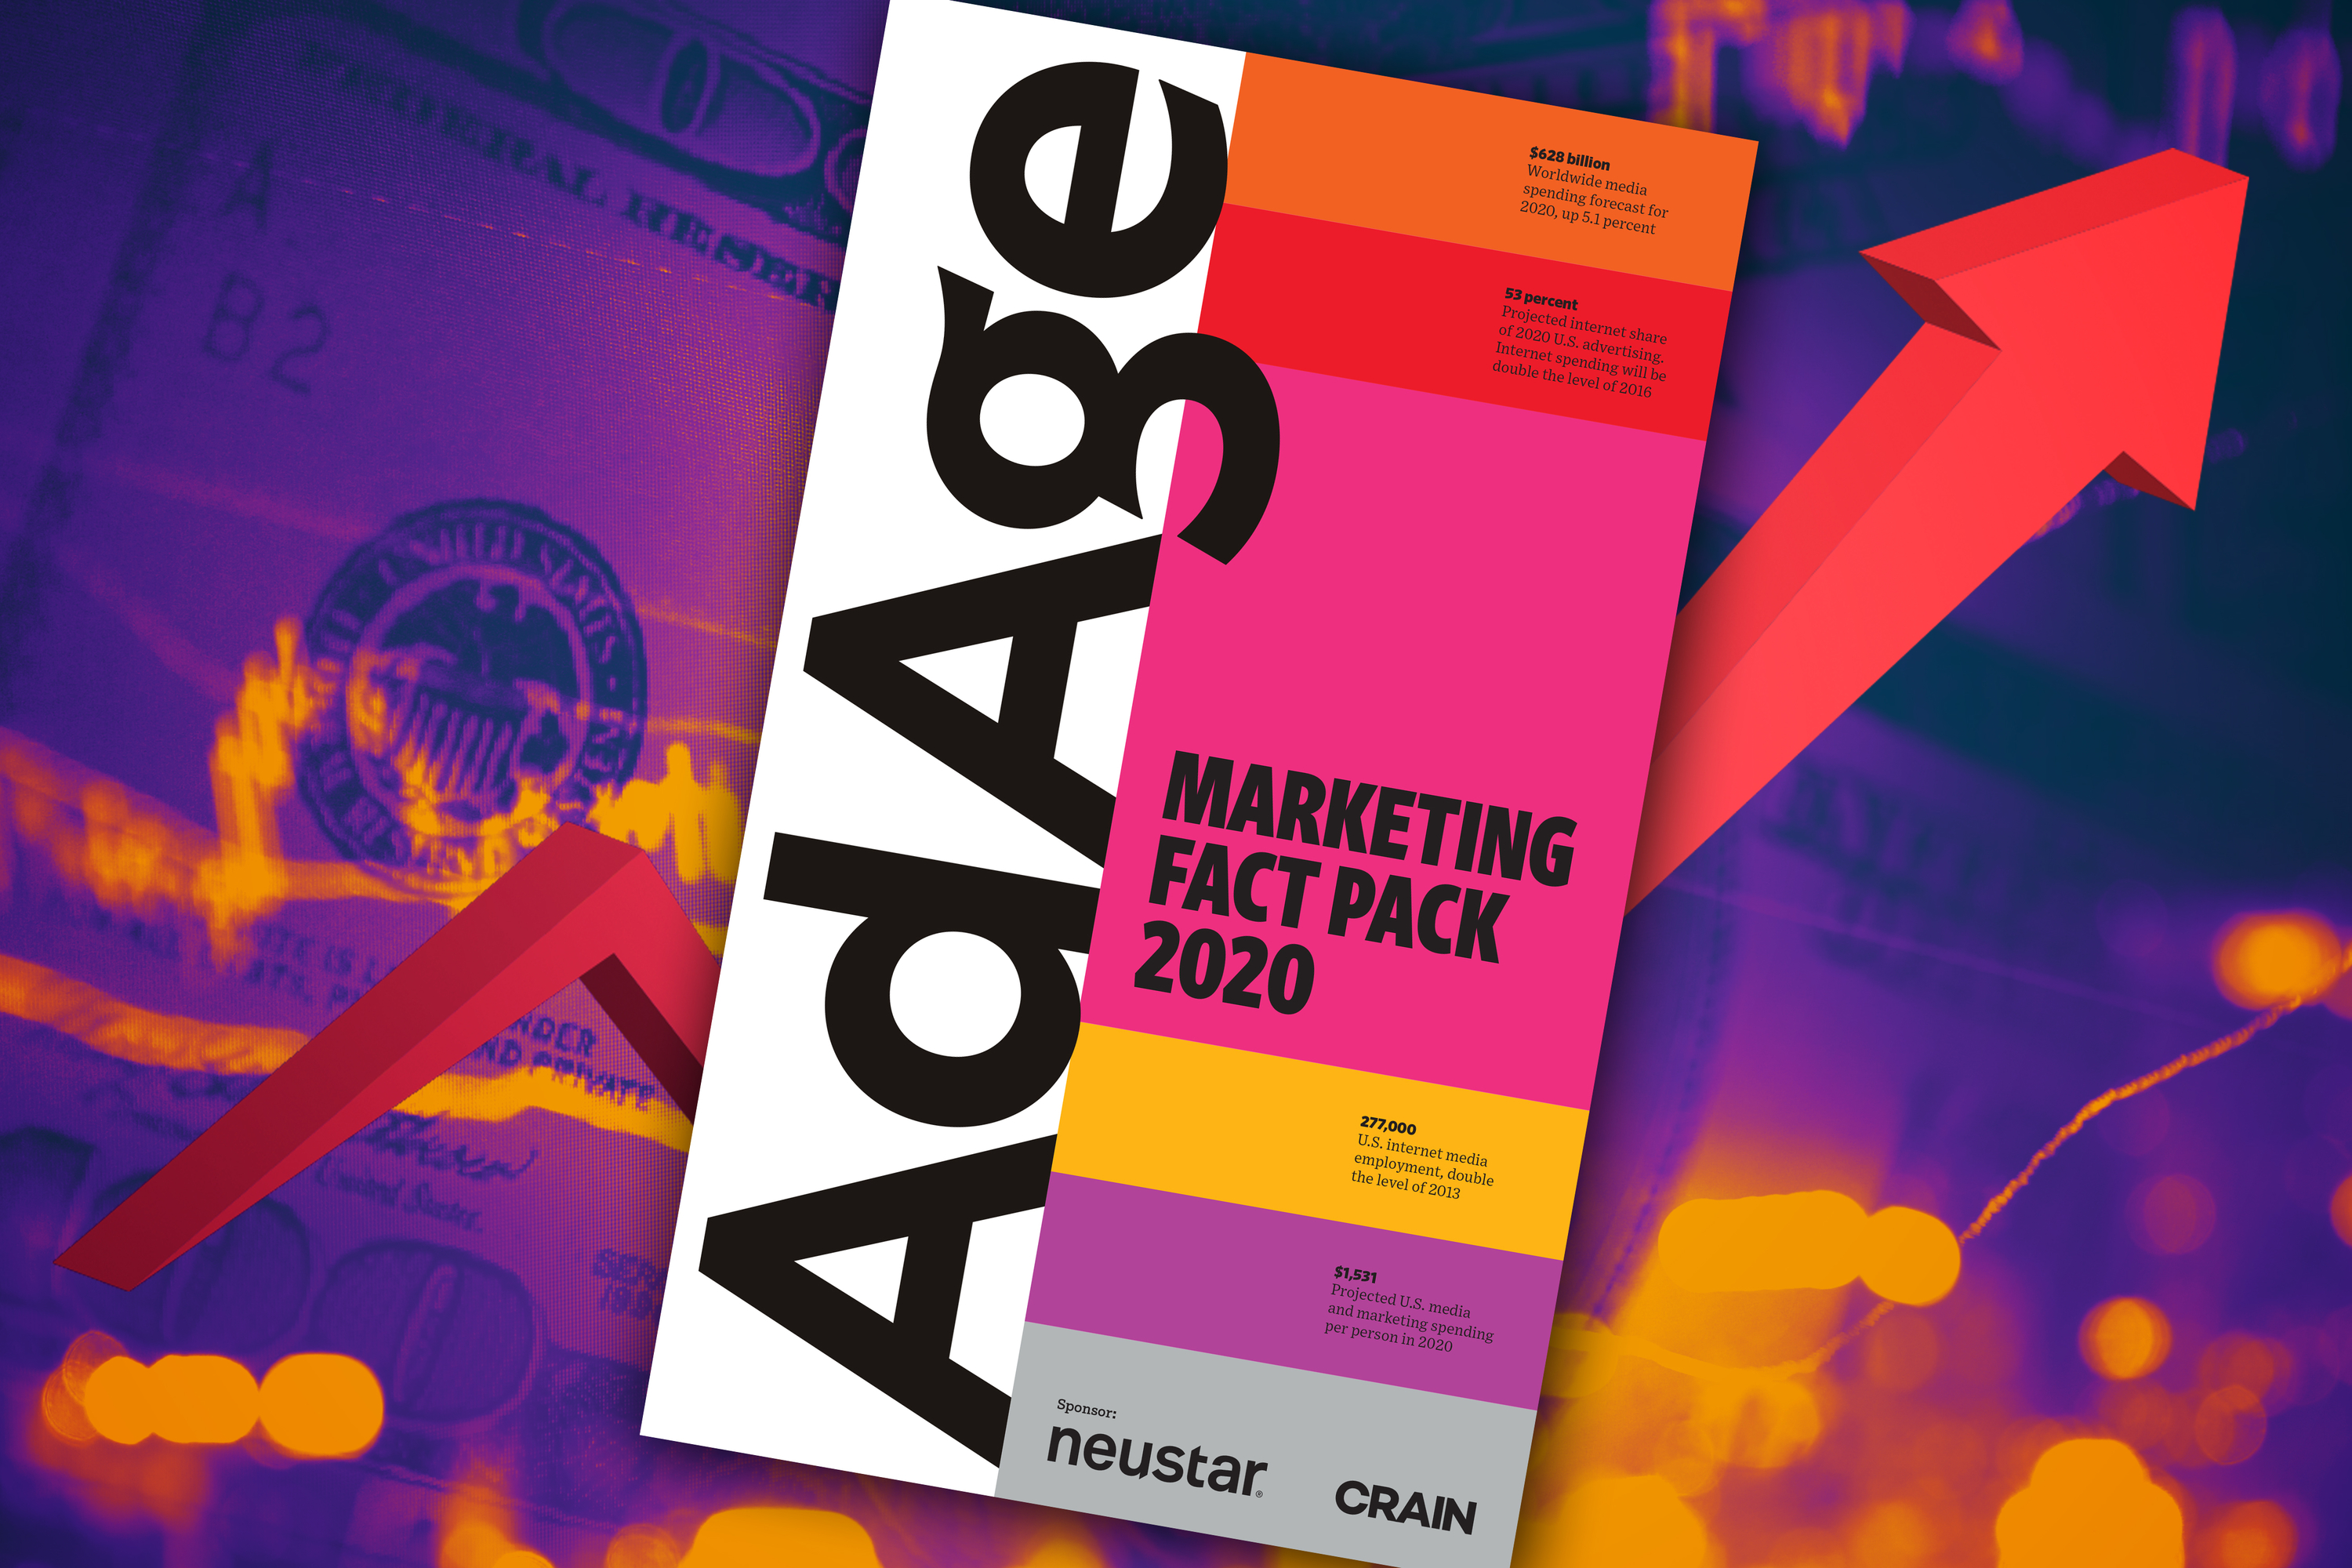 Internet in 2020 will account for half of ad spending